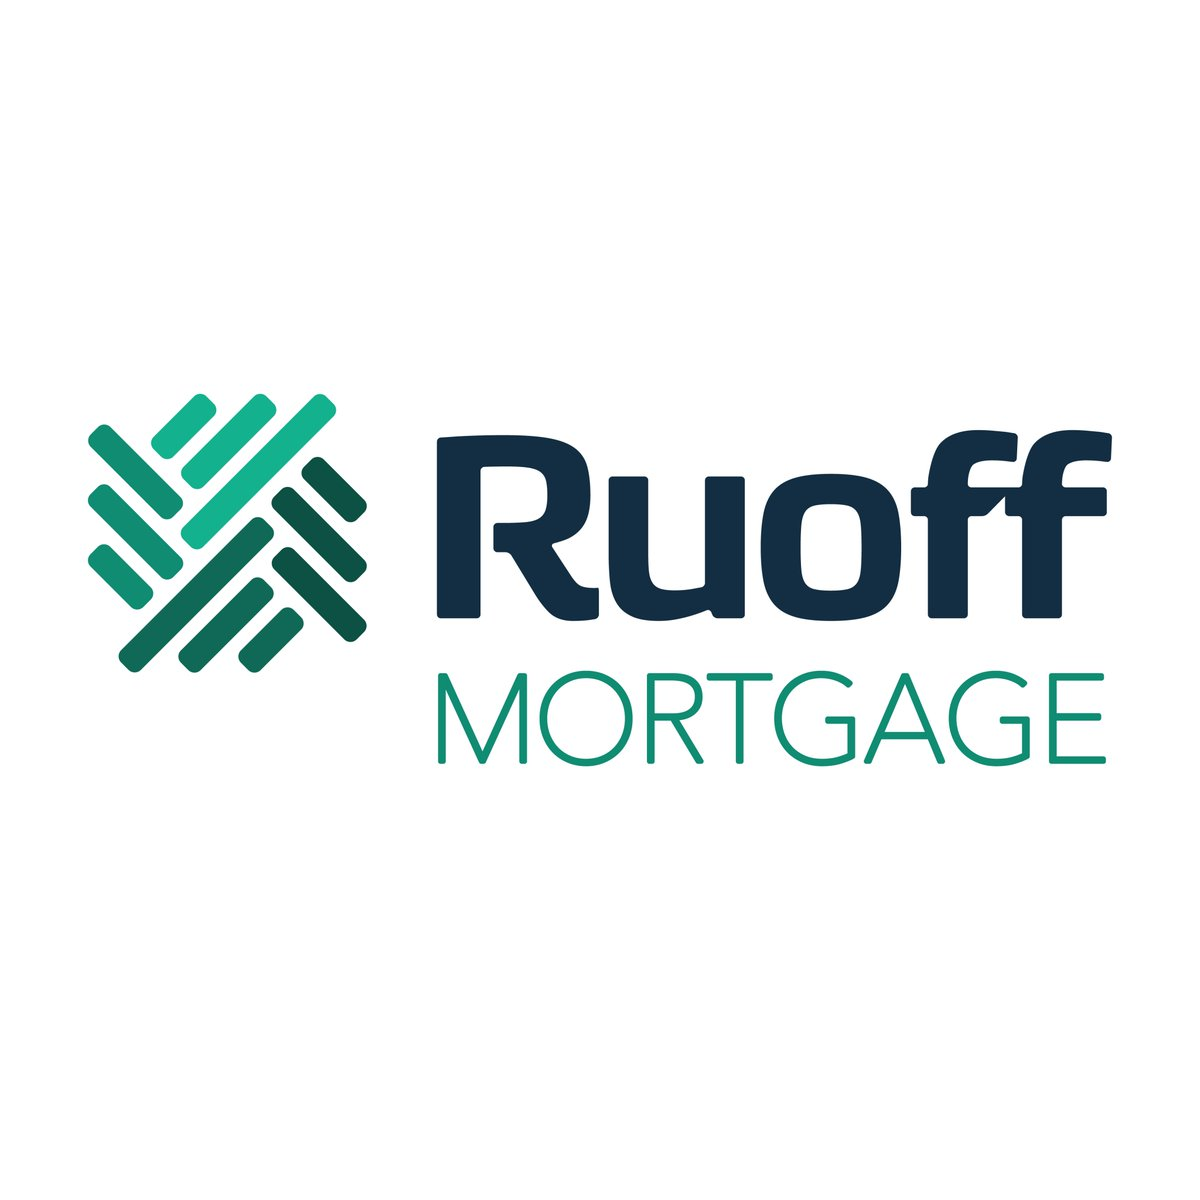 Today marks a new chapter for Ruoff Mortgage! We are excited to share our new, modernized look and feel with our clients, friends and communities. At Ruoff, we know the way home. We'll walk there with you. And with every closing, we're opening doors.